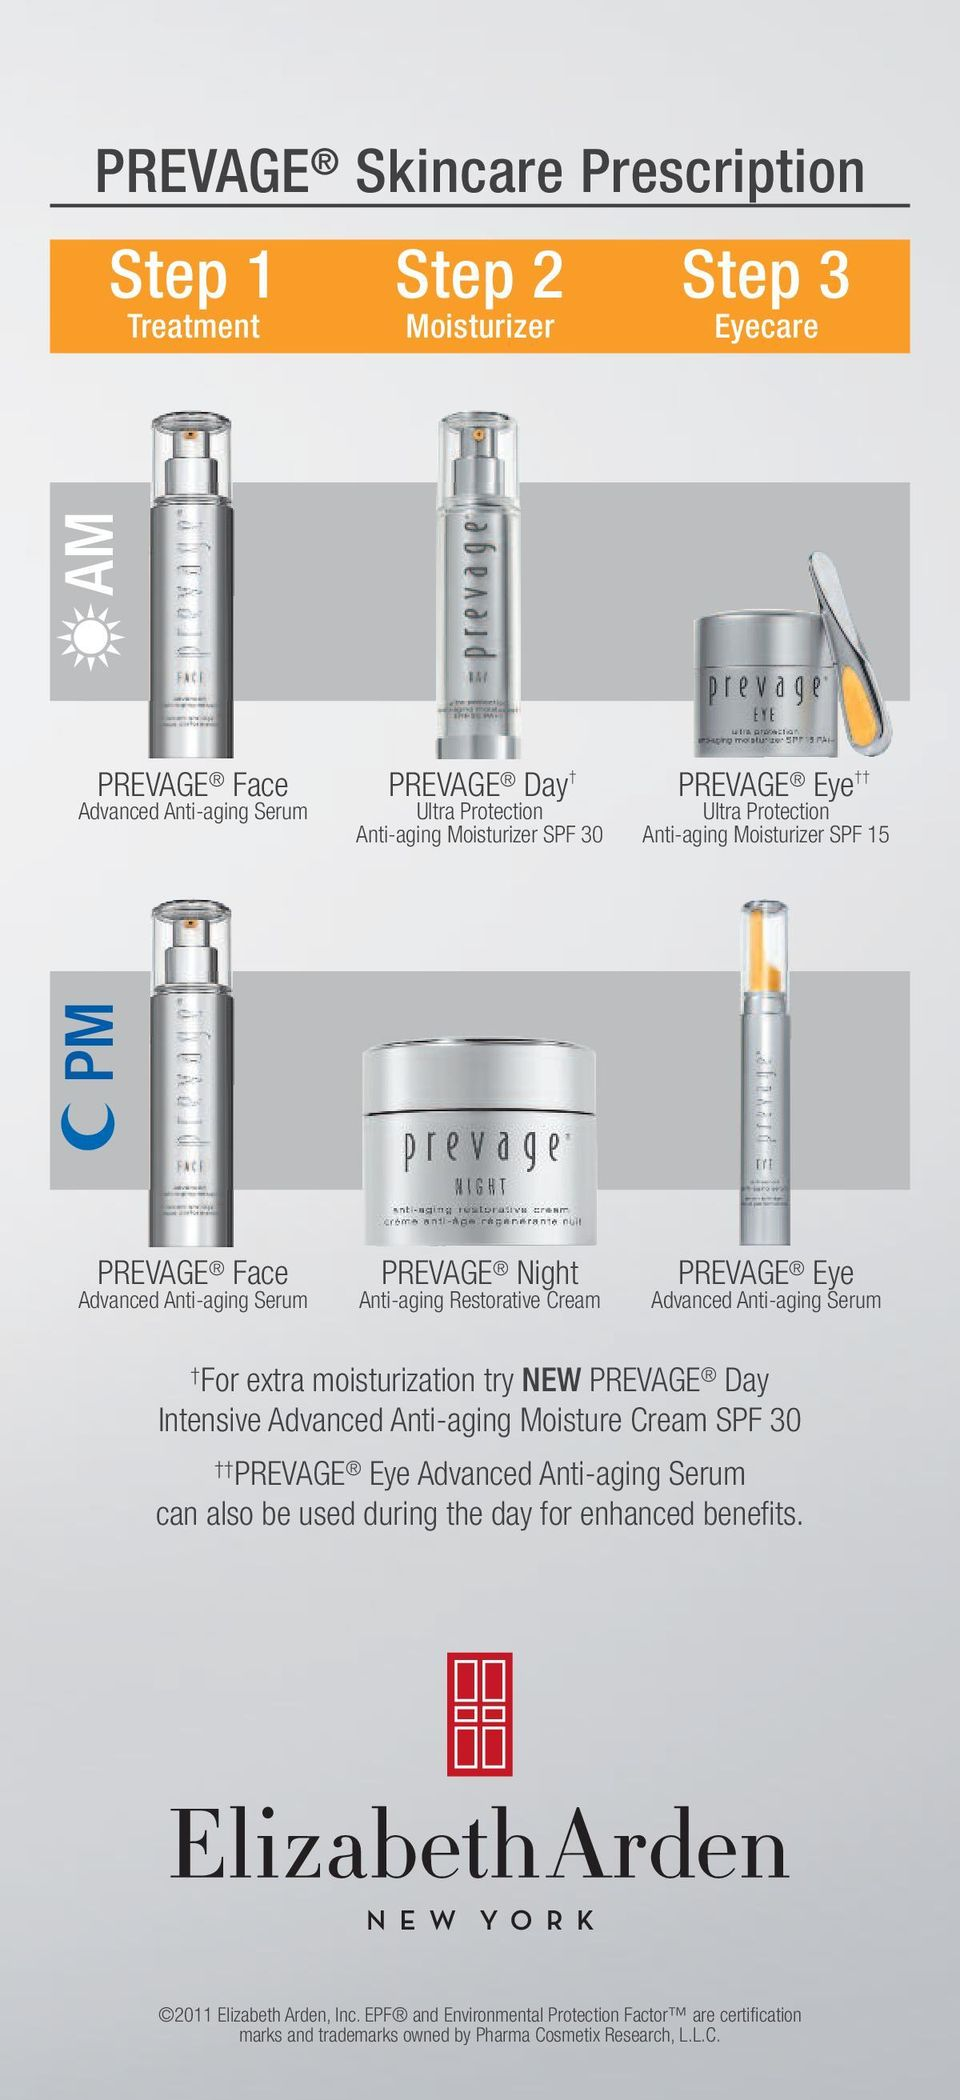 Anti-aging Serum For extra moisturization try NEW PREVAGE Day Intensive Advanced Anti-aging Moisture Cream SPF 30 PREVAGE Eye Advanced Anti-aging Serum can also be used during